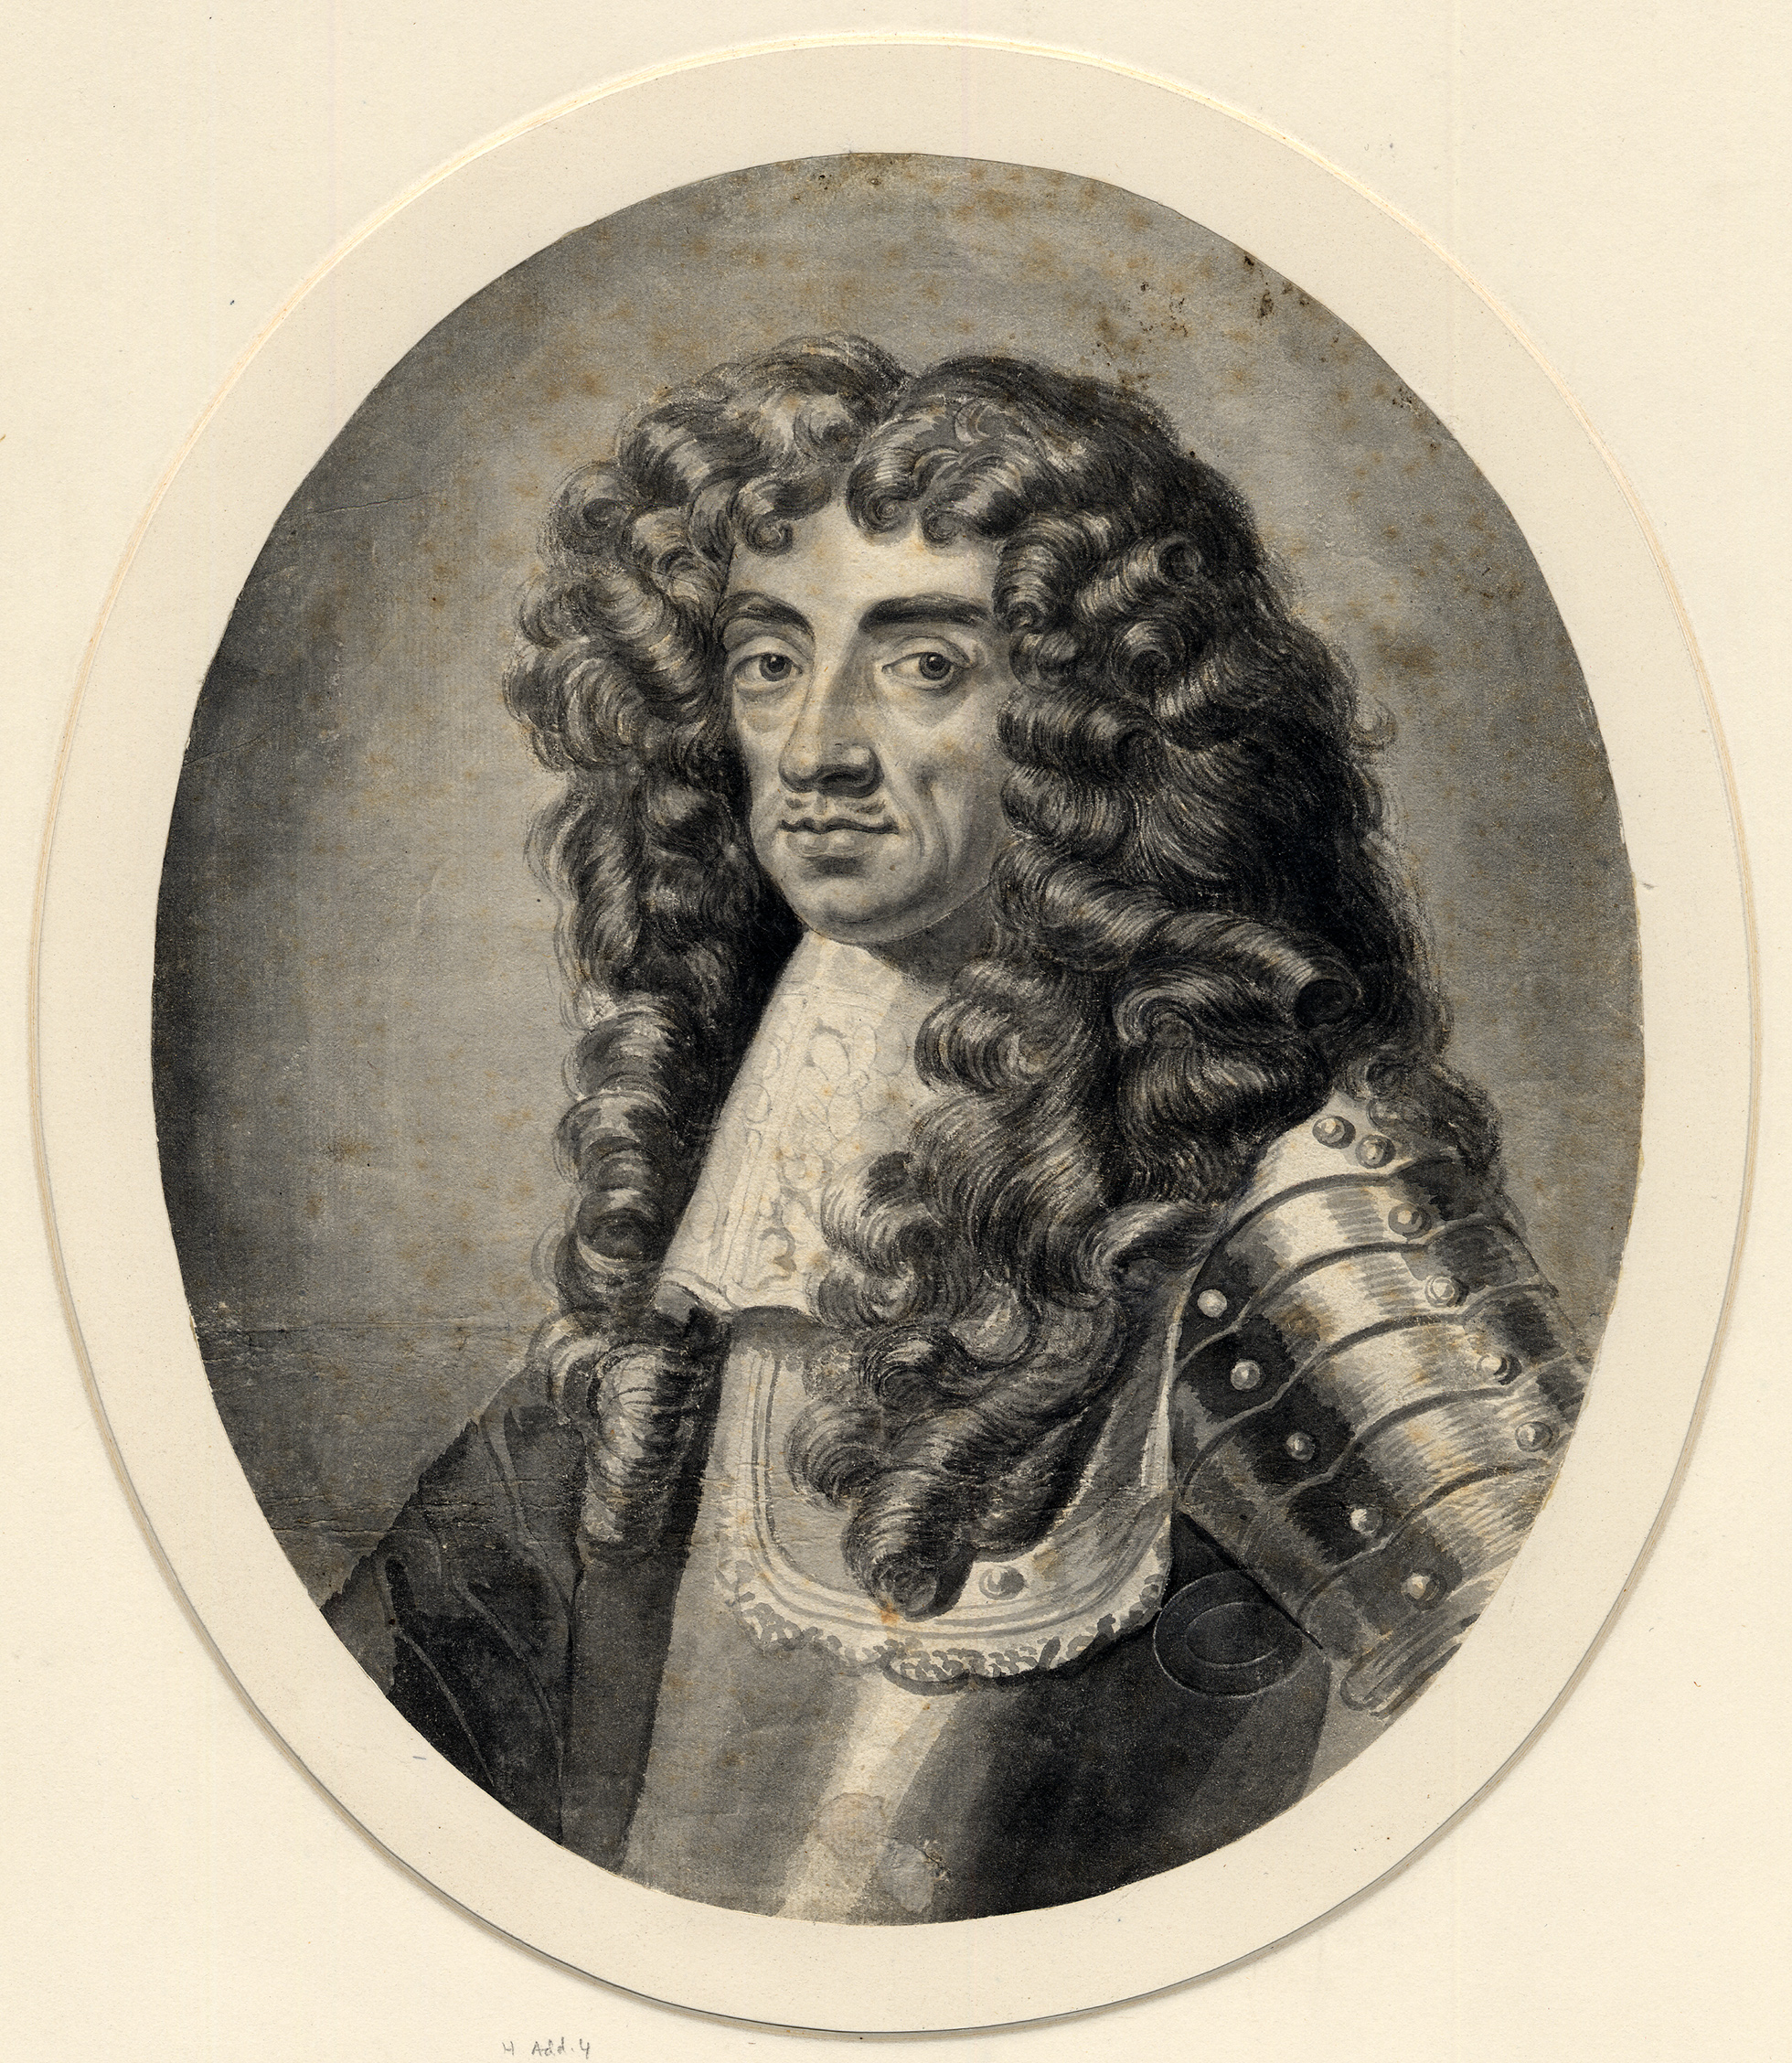 A black-and-white portrait of King Charles II who wears a suit of armour and has long curly hair.